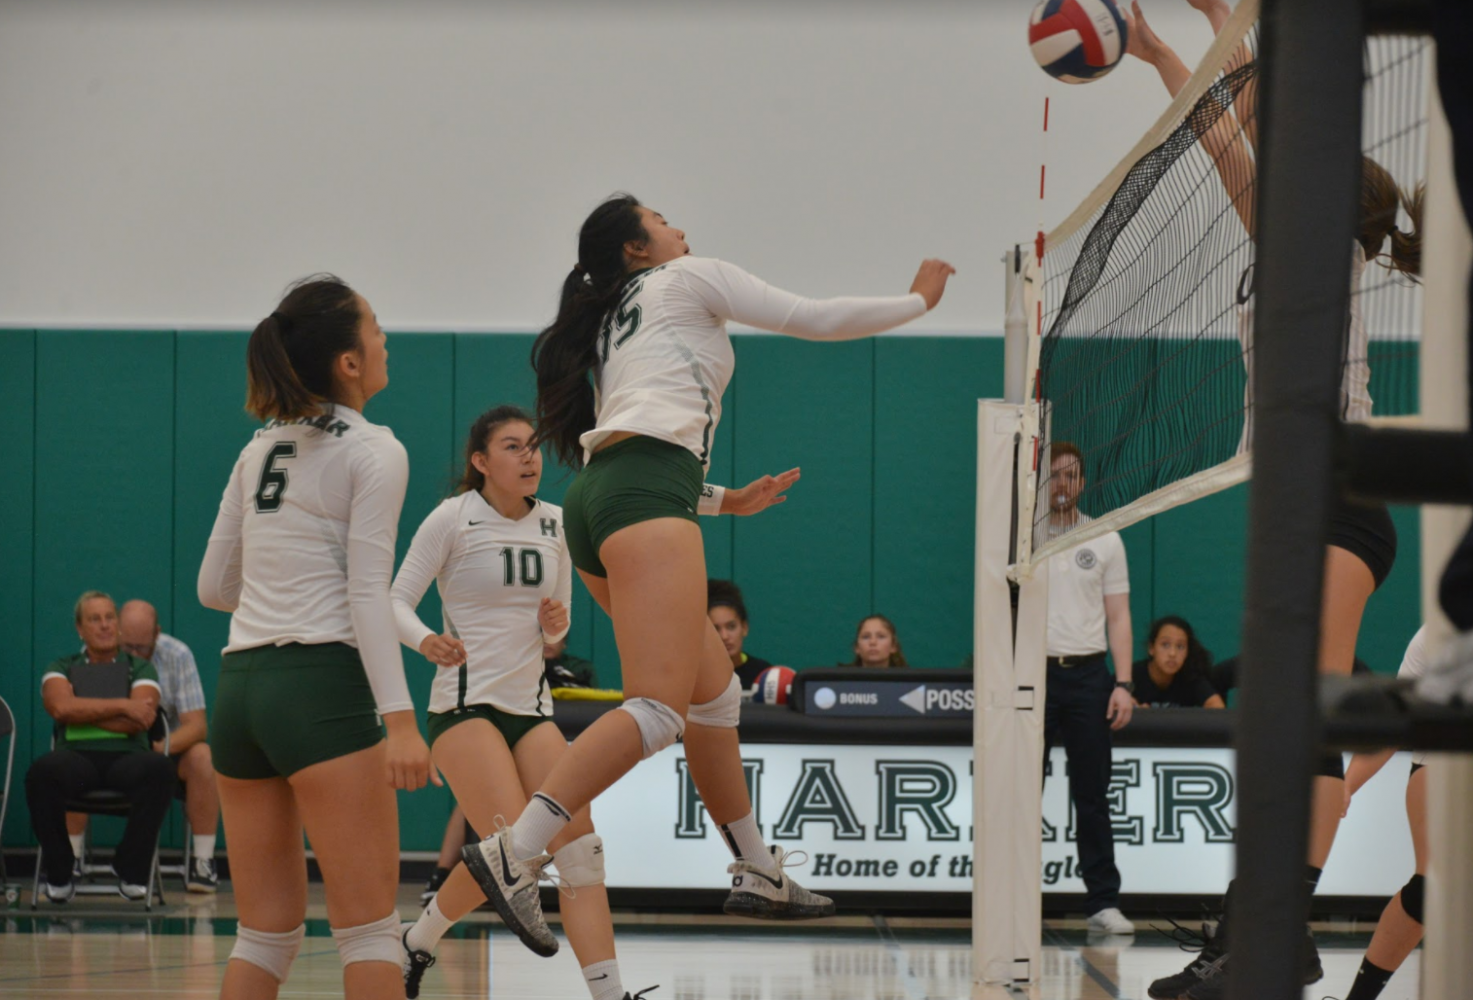 Tiffany Shou (12) jumps to hit the ball during the volleyball game against Westmont High School. The girls went on to win the game in three sets.